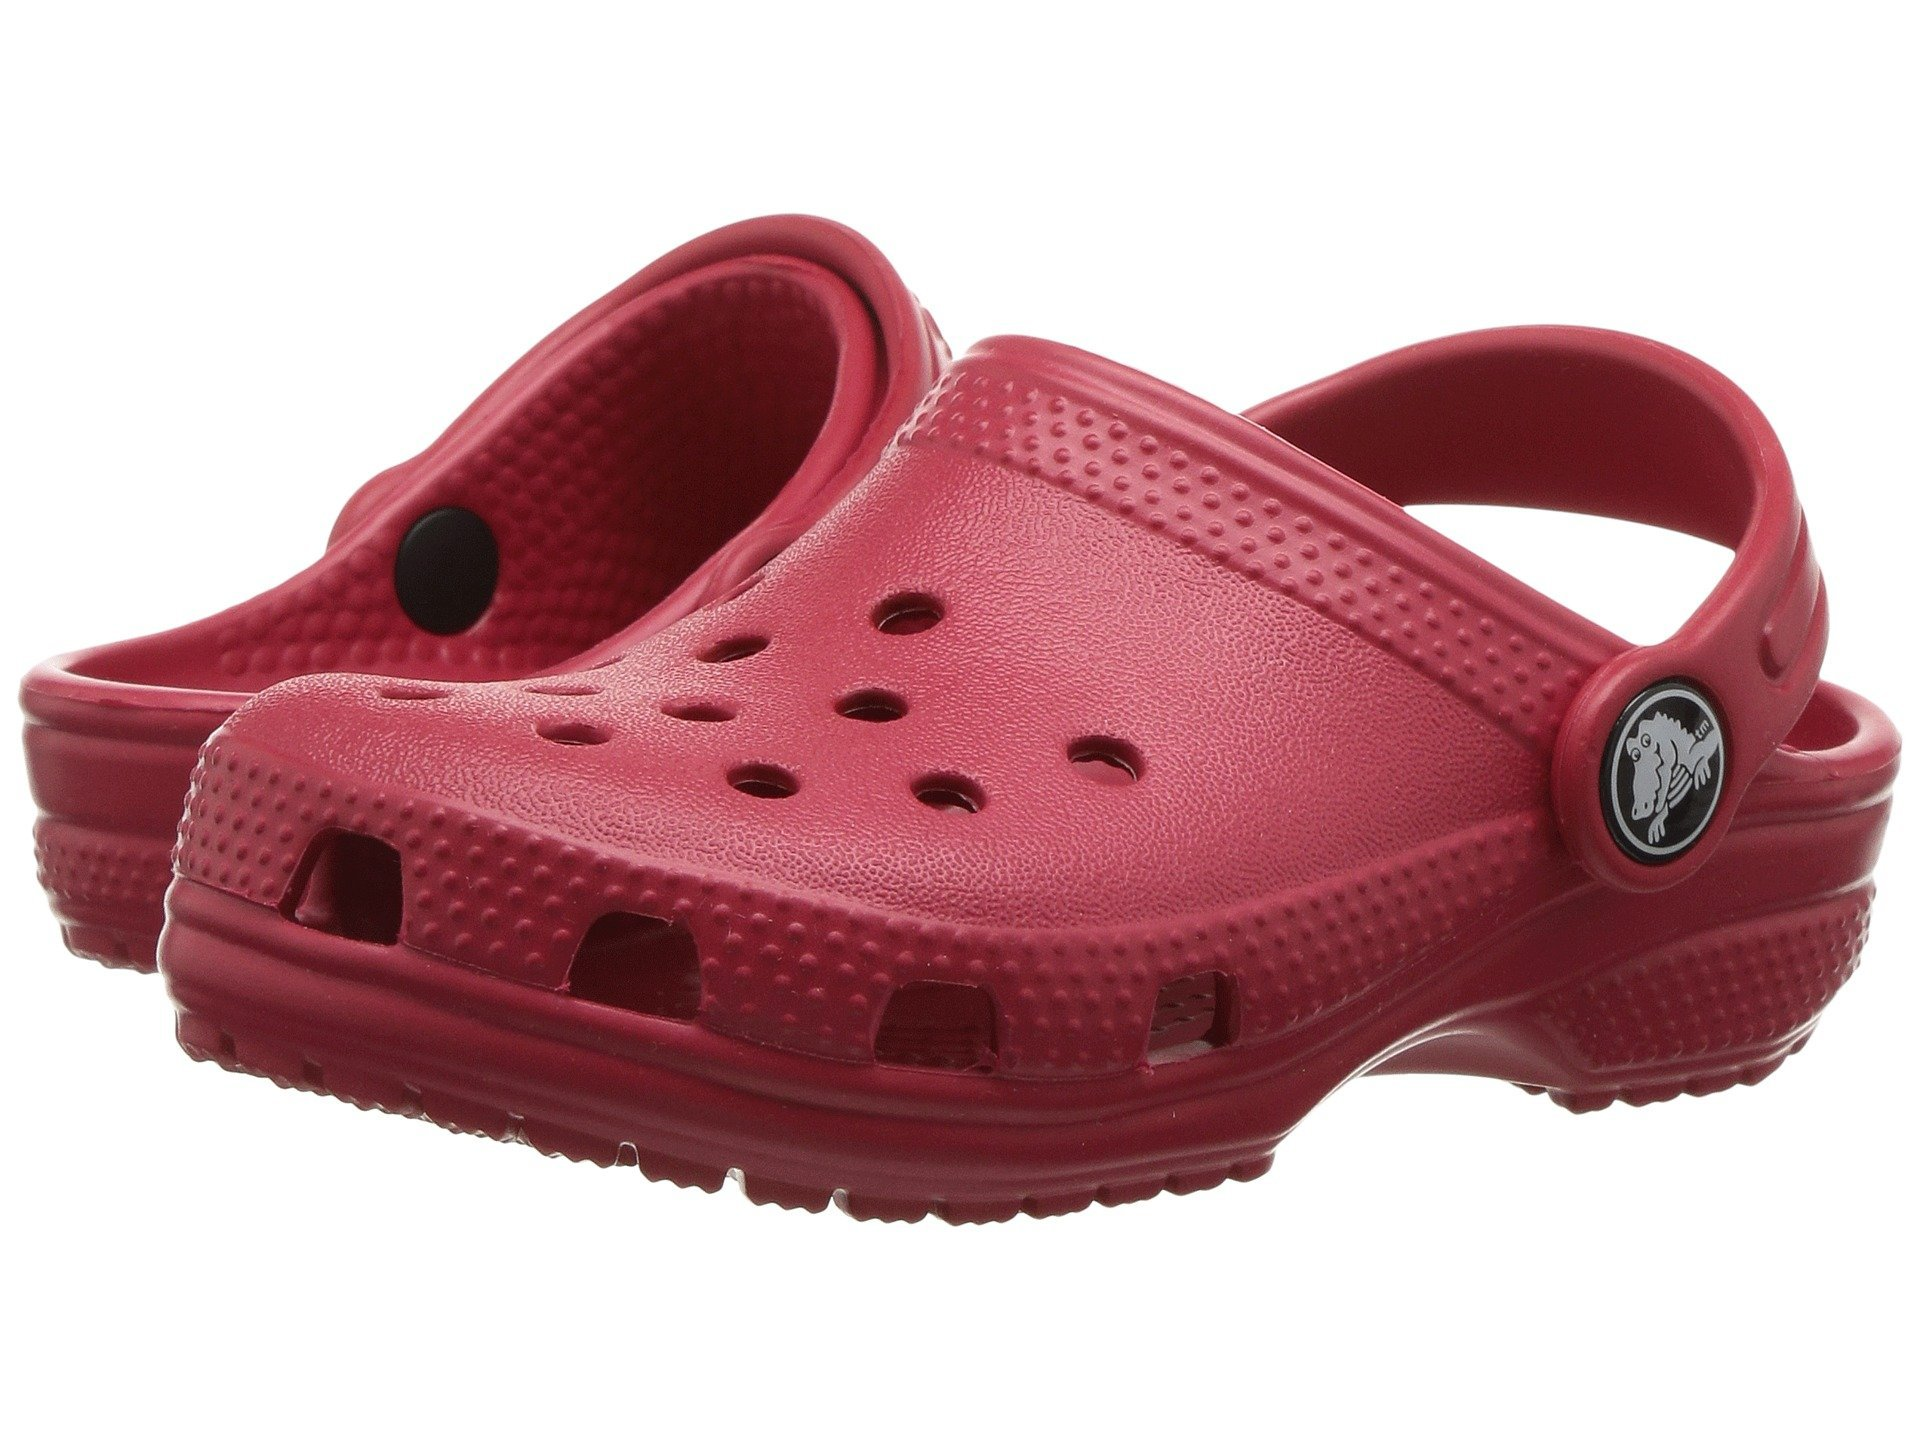 Crocs Unisex Classic Clog, Pepper, 5 US Men/7 US Women